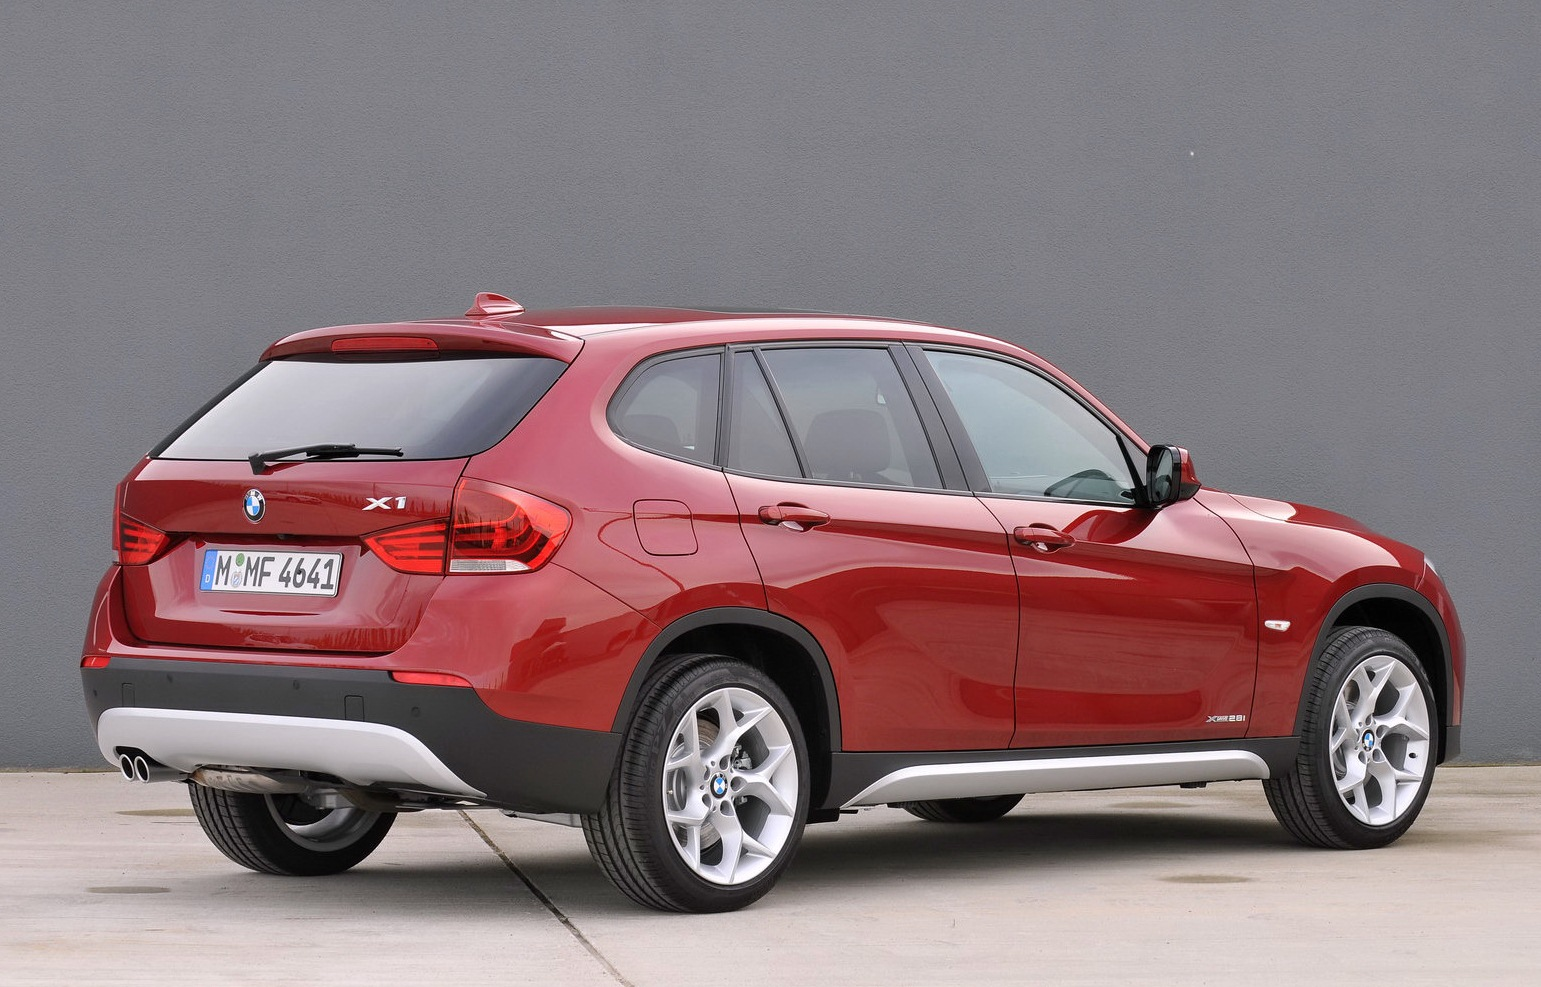 BMW X1 xDrive25i 2012 photo - 2